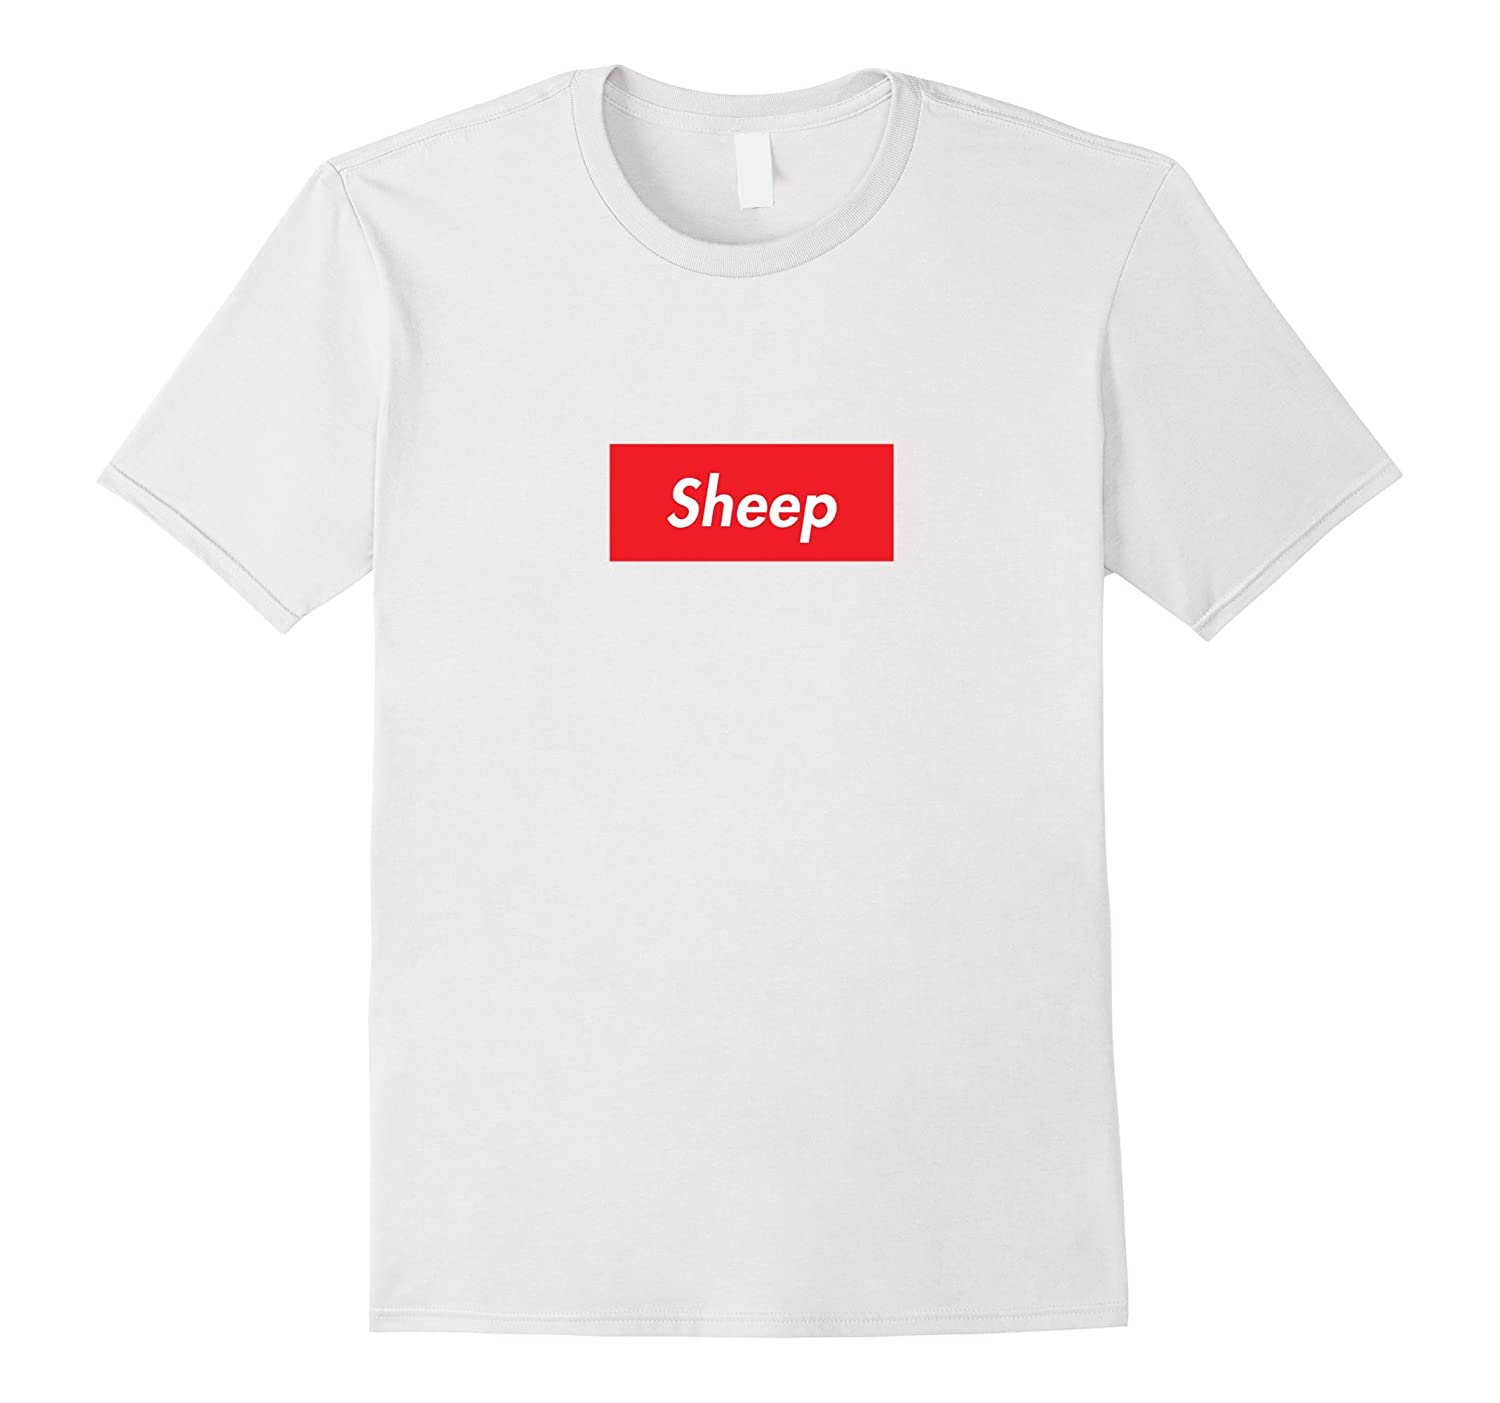 Mens Official Sheep T-Shirt - Red Box White Letters - Men's White-T-Shirt